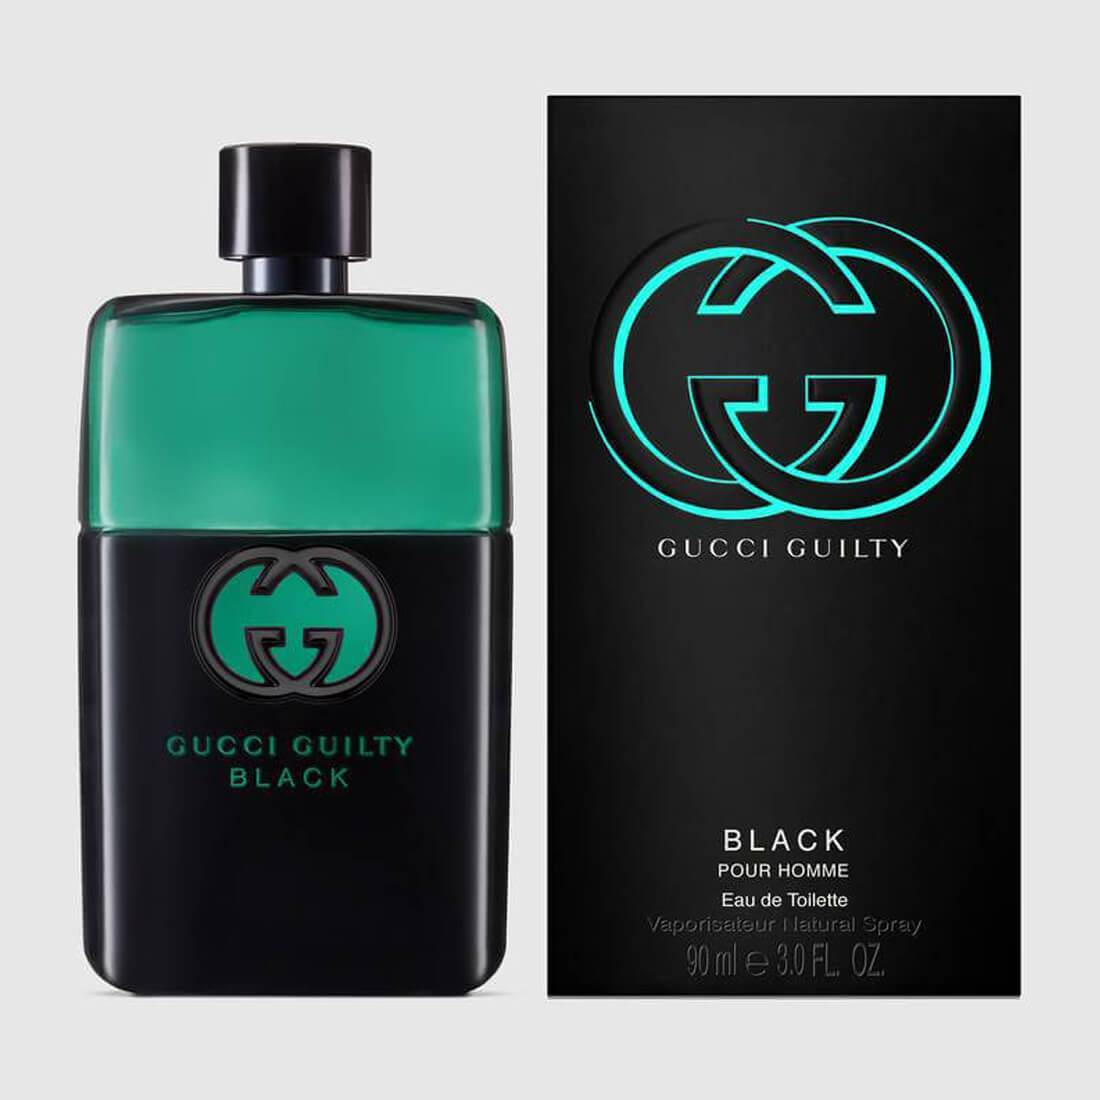 Gucci Guilty Black Pour Homme Perfume For Men 90ml Fridaycharmcom